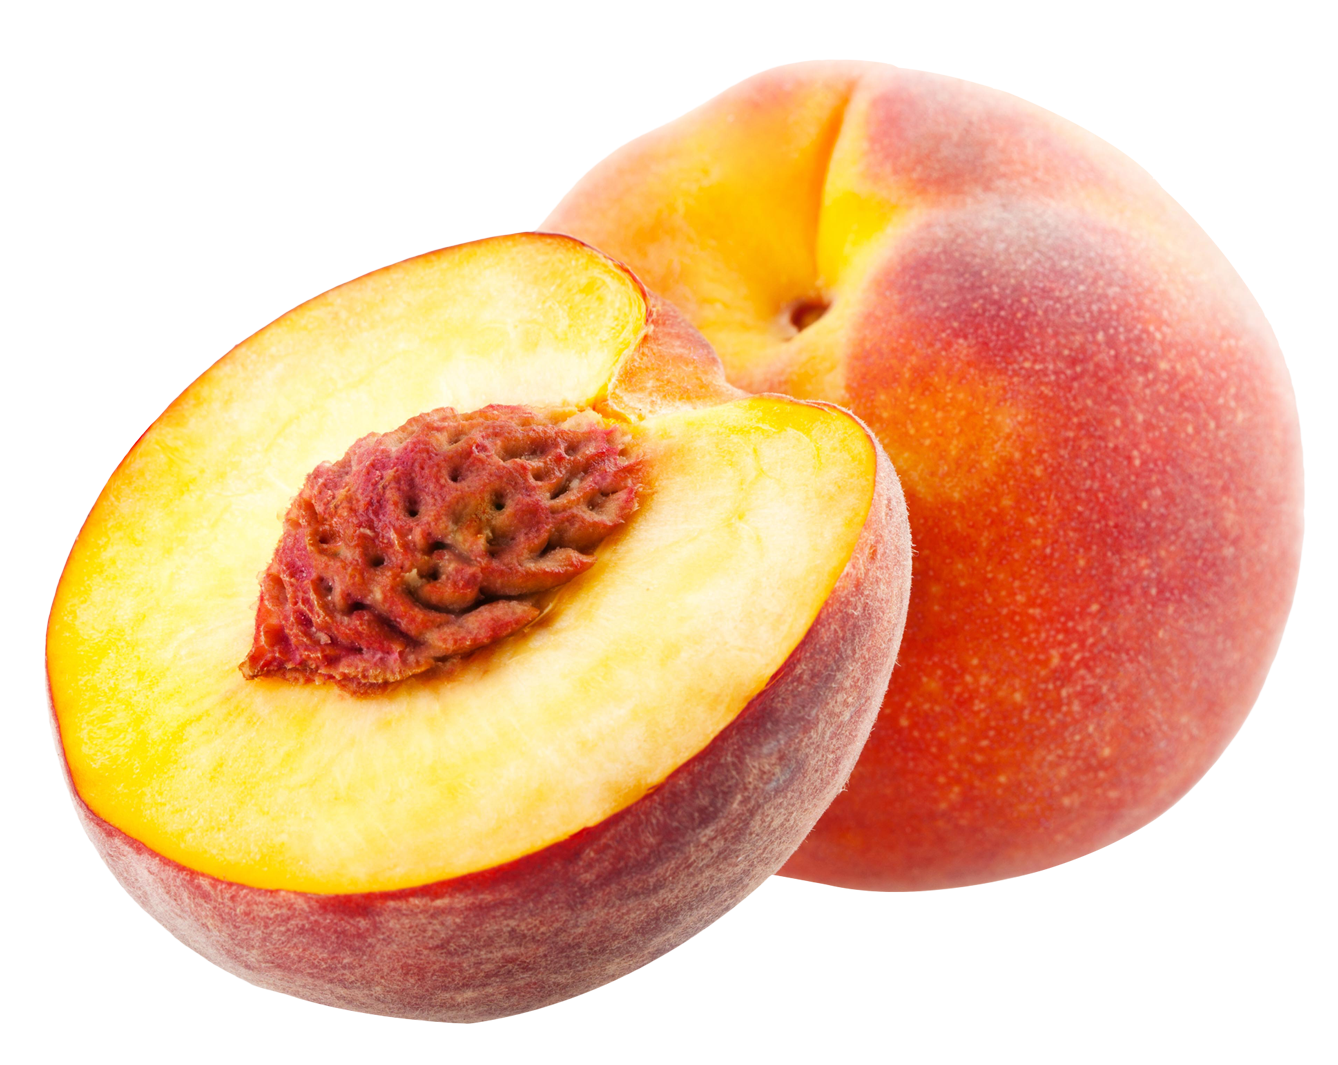 Peach PNG Image Download image #41687 - Peach PNG